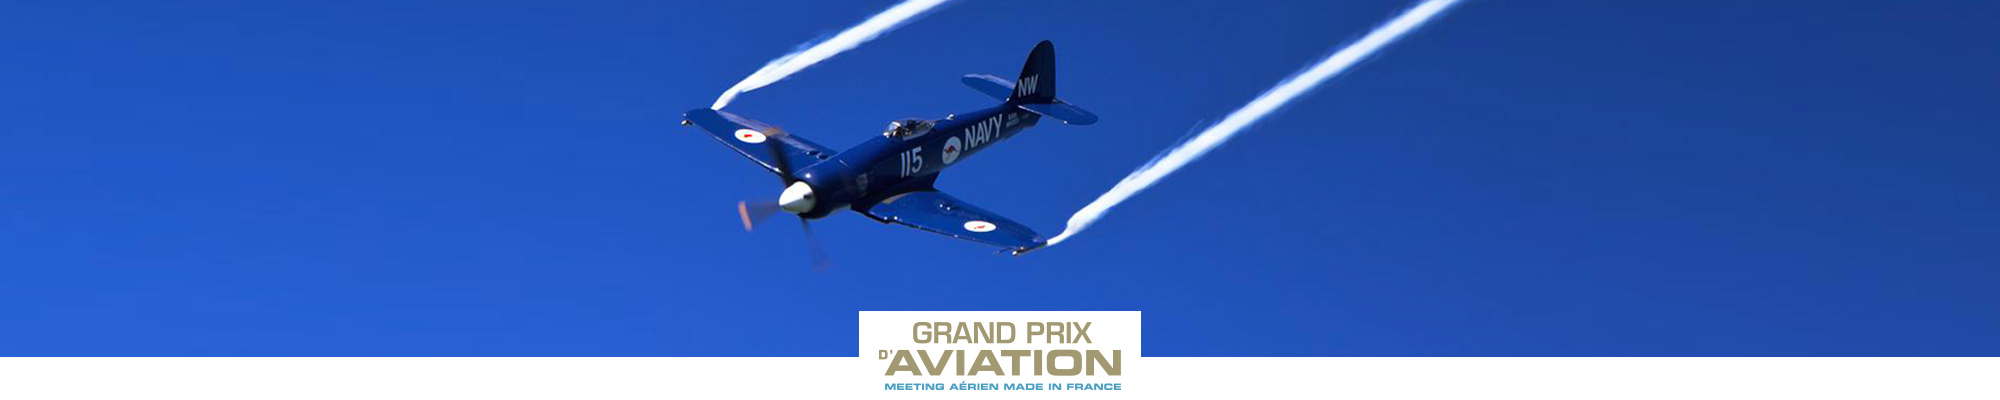 GPA : grand prix d'aviation